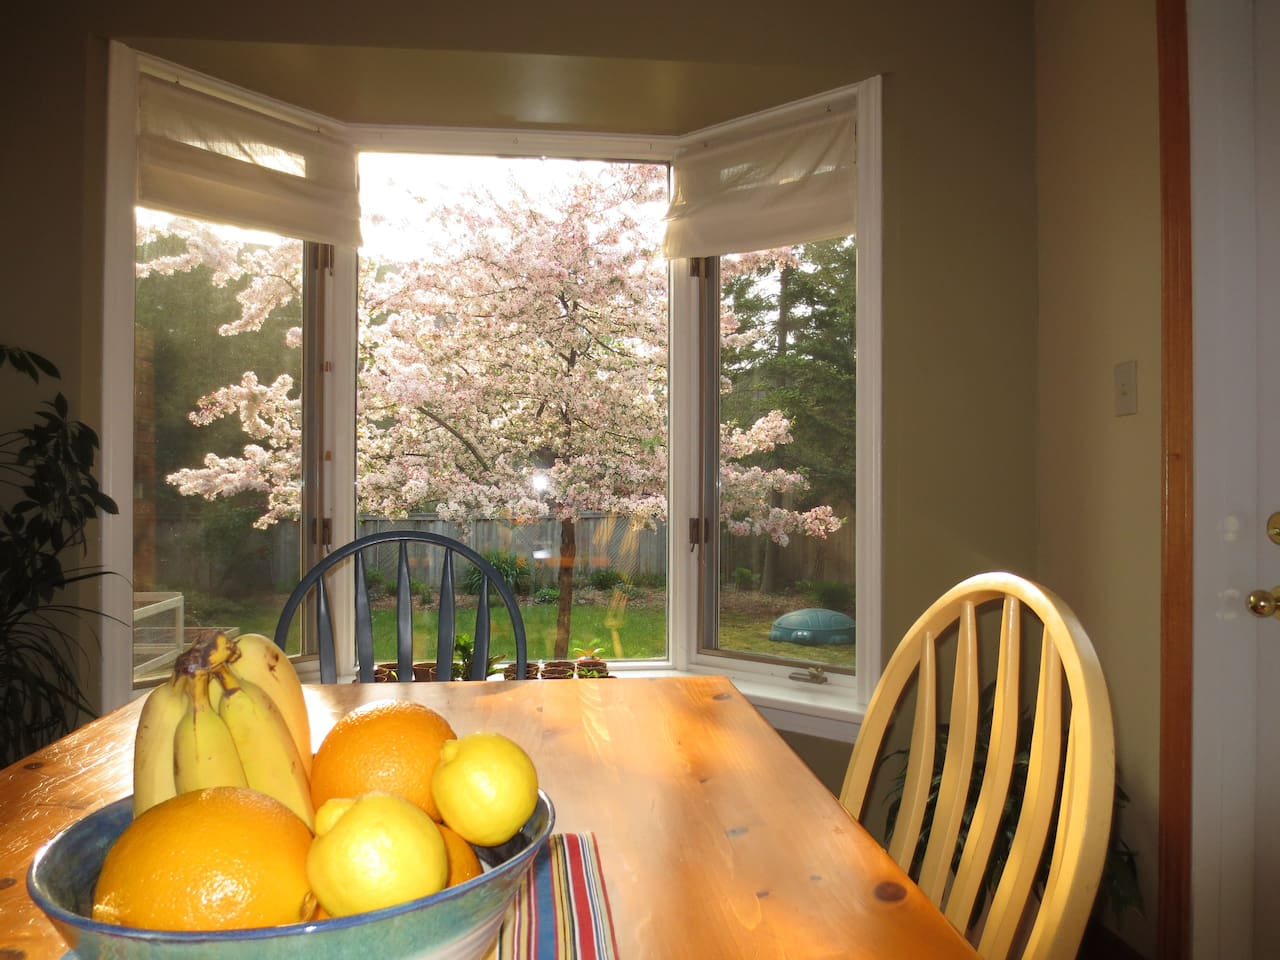 Bright sunny kitchen with a large harvest table.